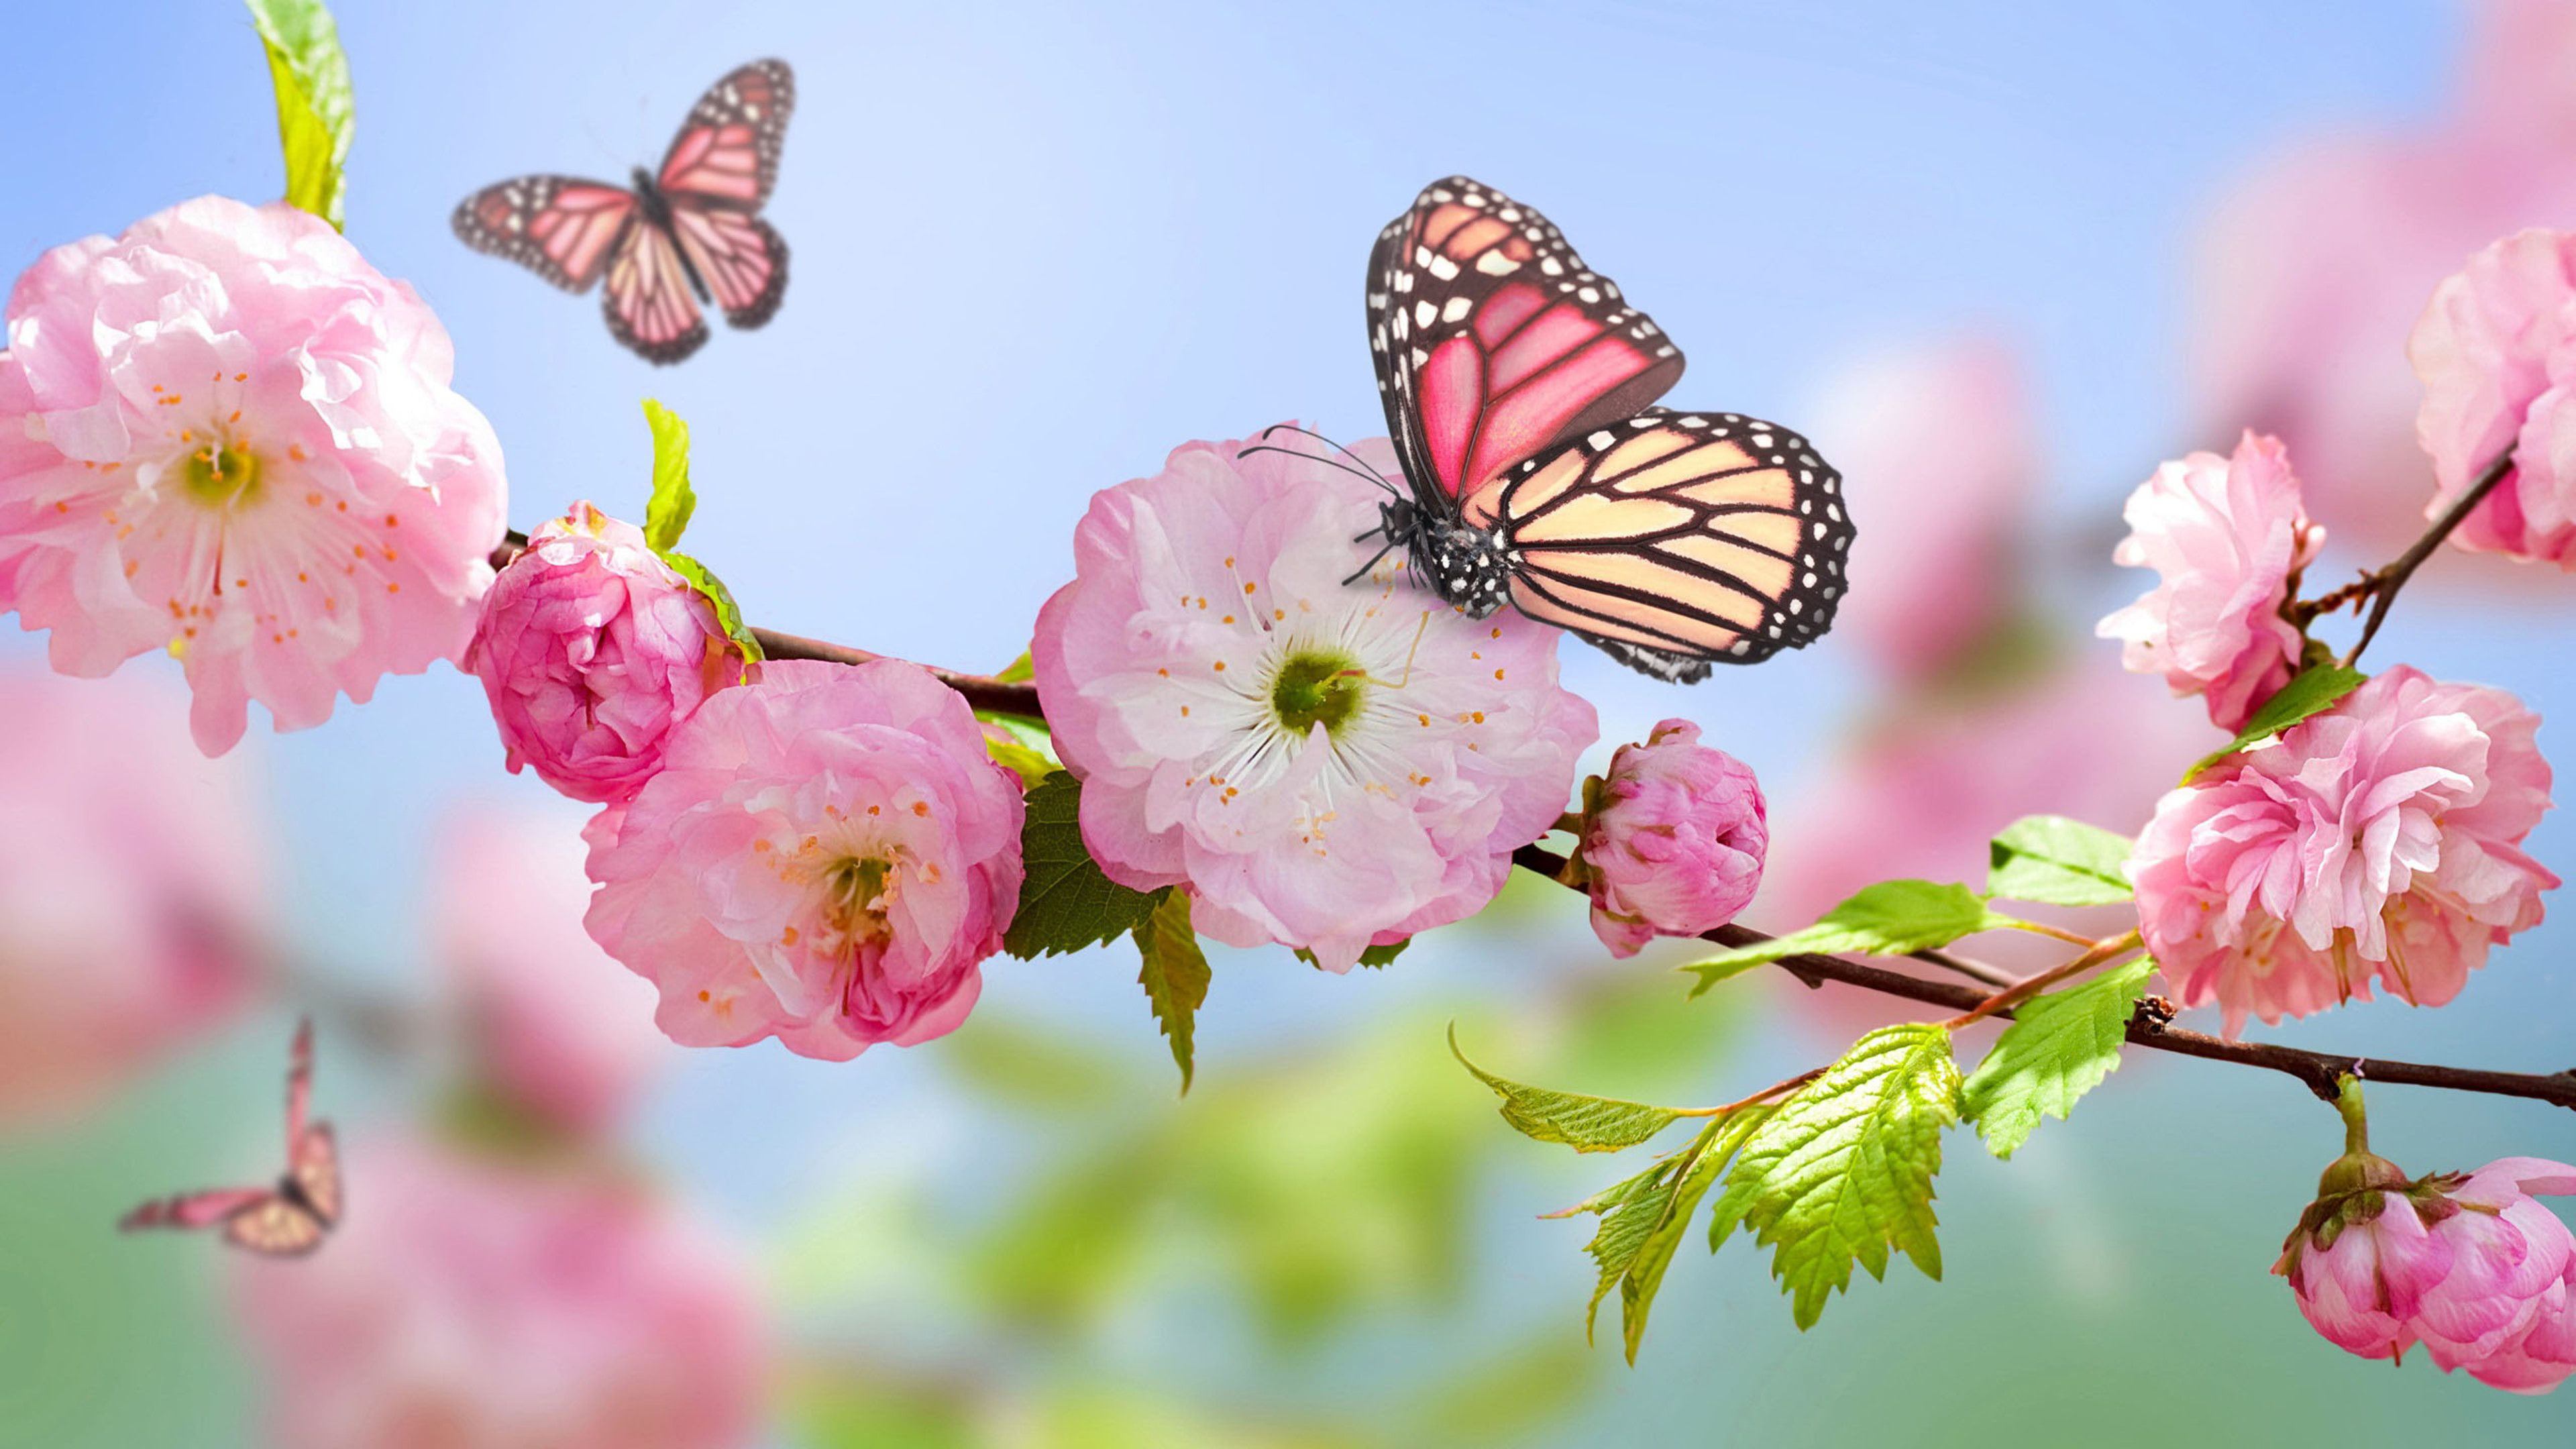 Wallpaper Download 3840x2160 Pink Butterfly On The Blossom Trees